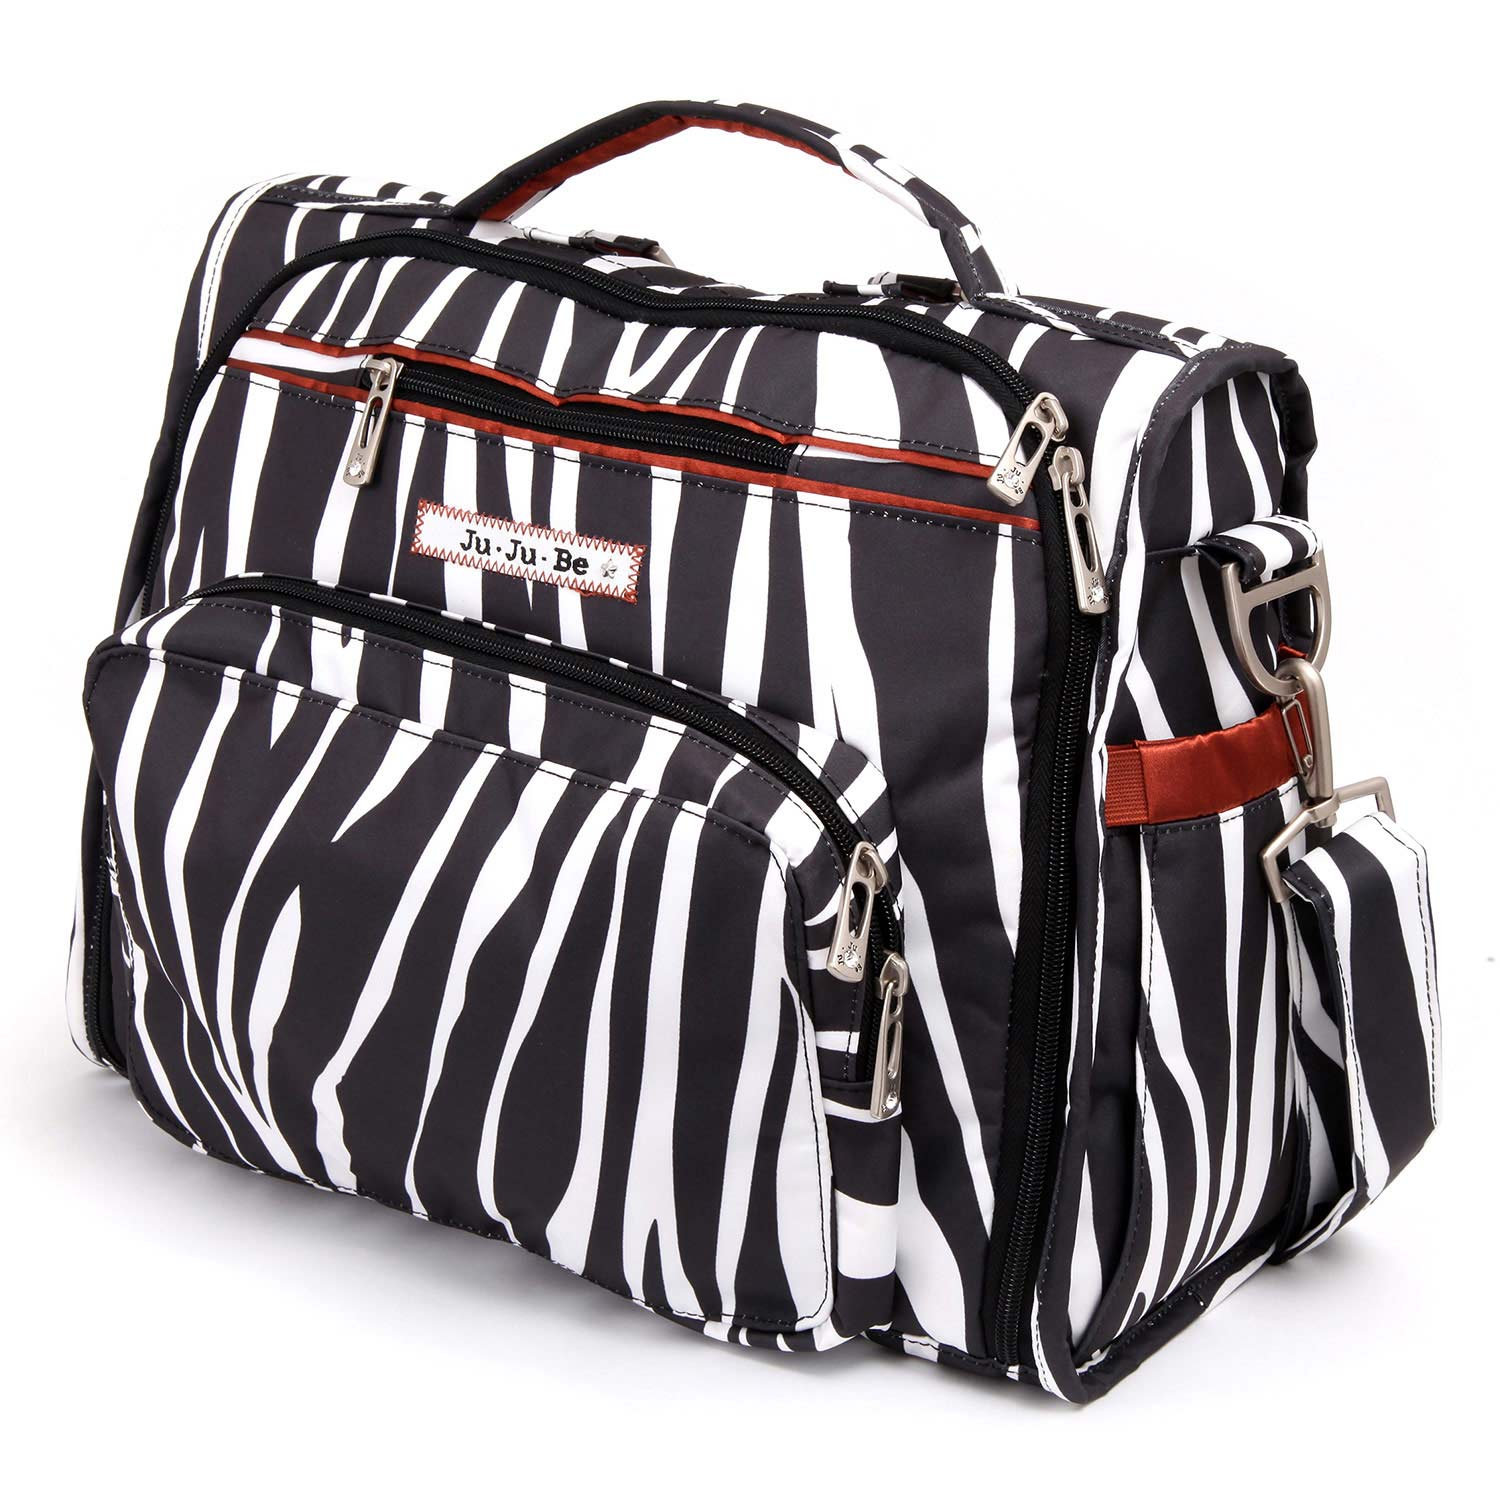 jujube diaper bag bff -  Safari Stripes